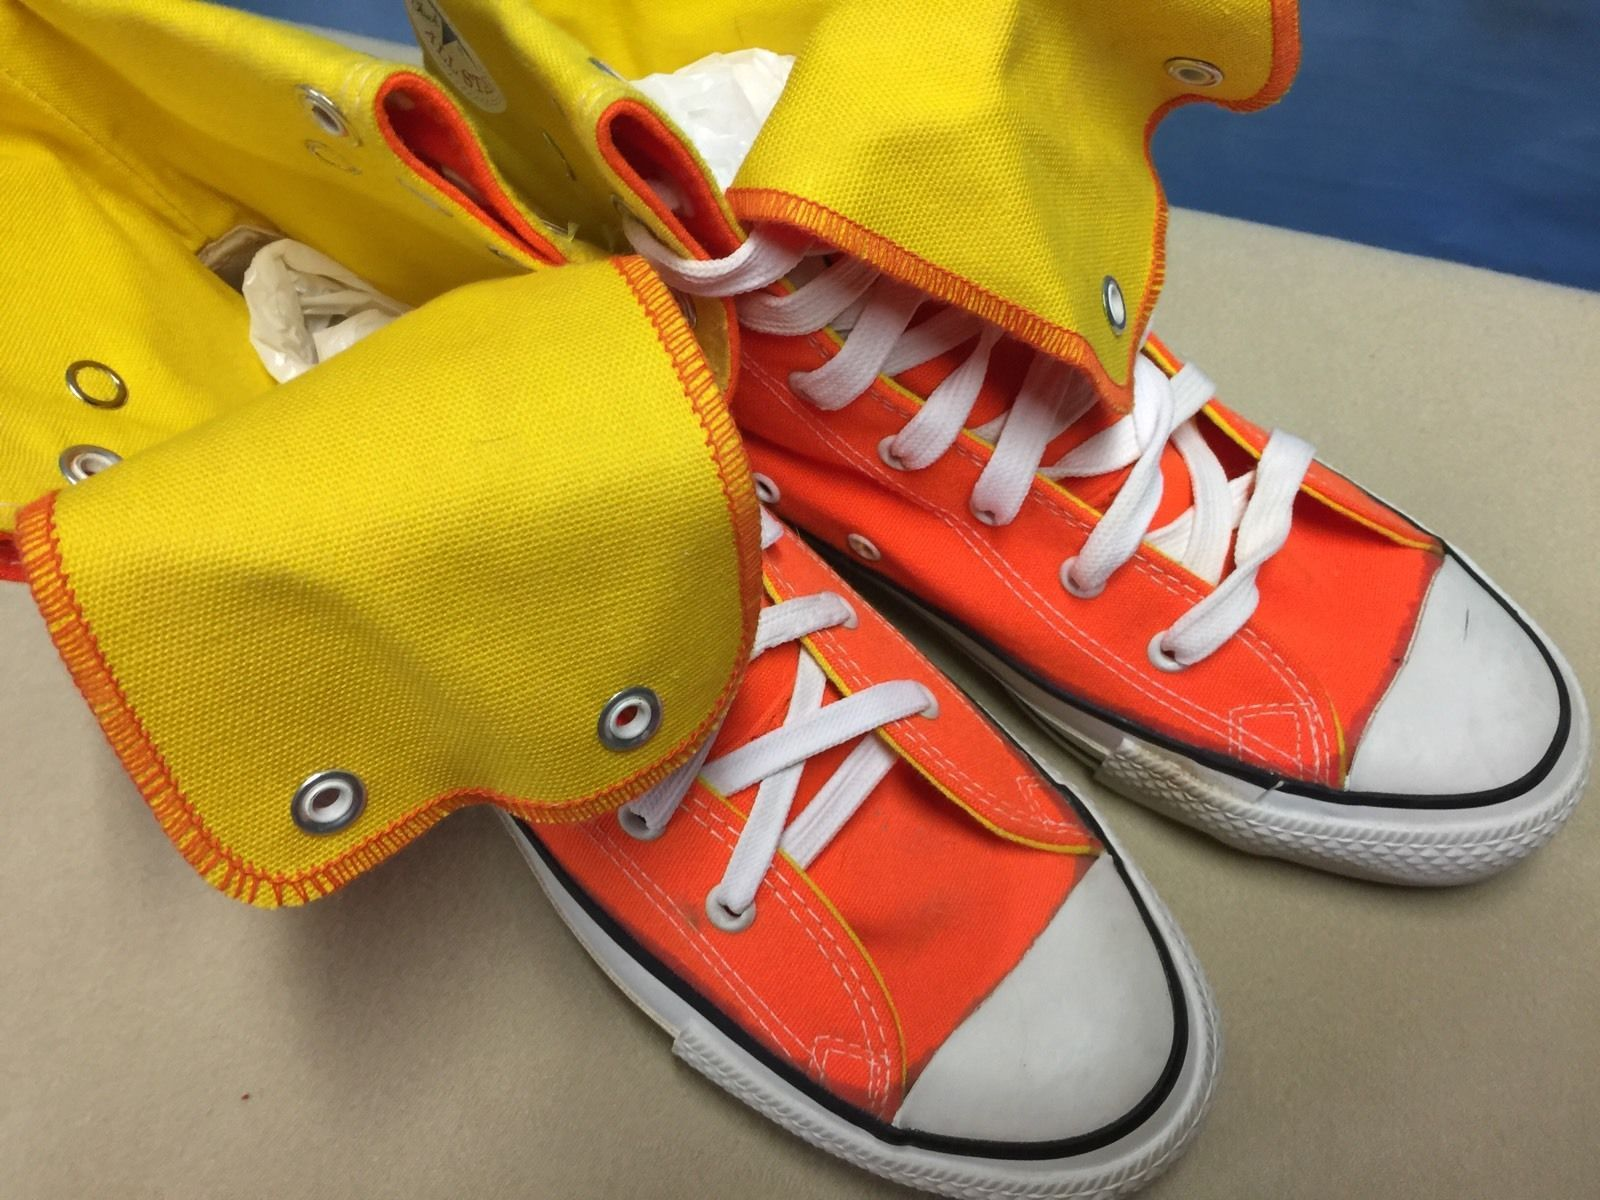 12ea41b449e9 Vintage 80s 90s CONVERSE Orange Yellow Canvas High Top Sneakers Sz 6.5 USA  MADE! in Clothing